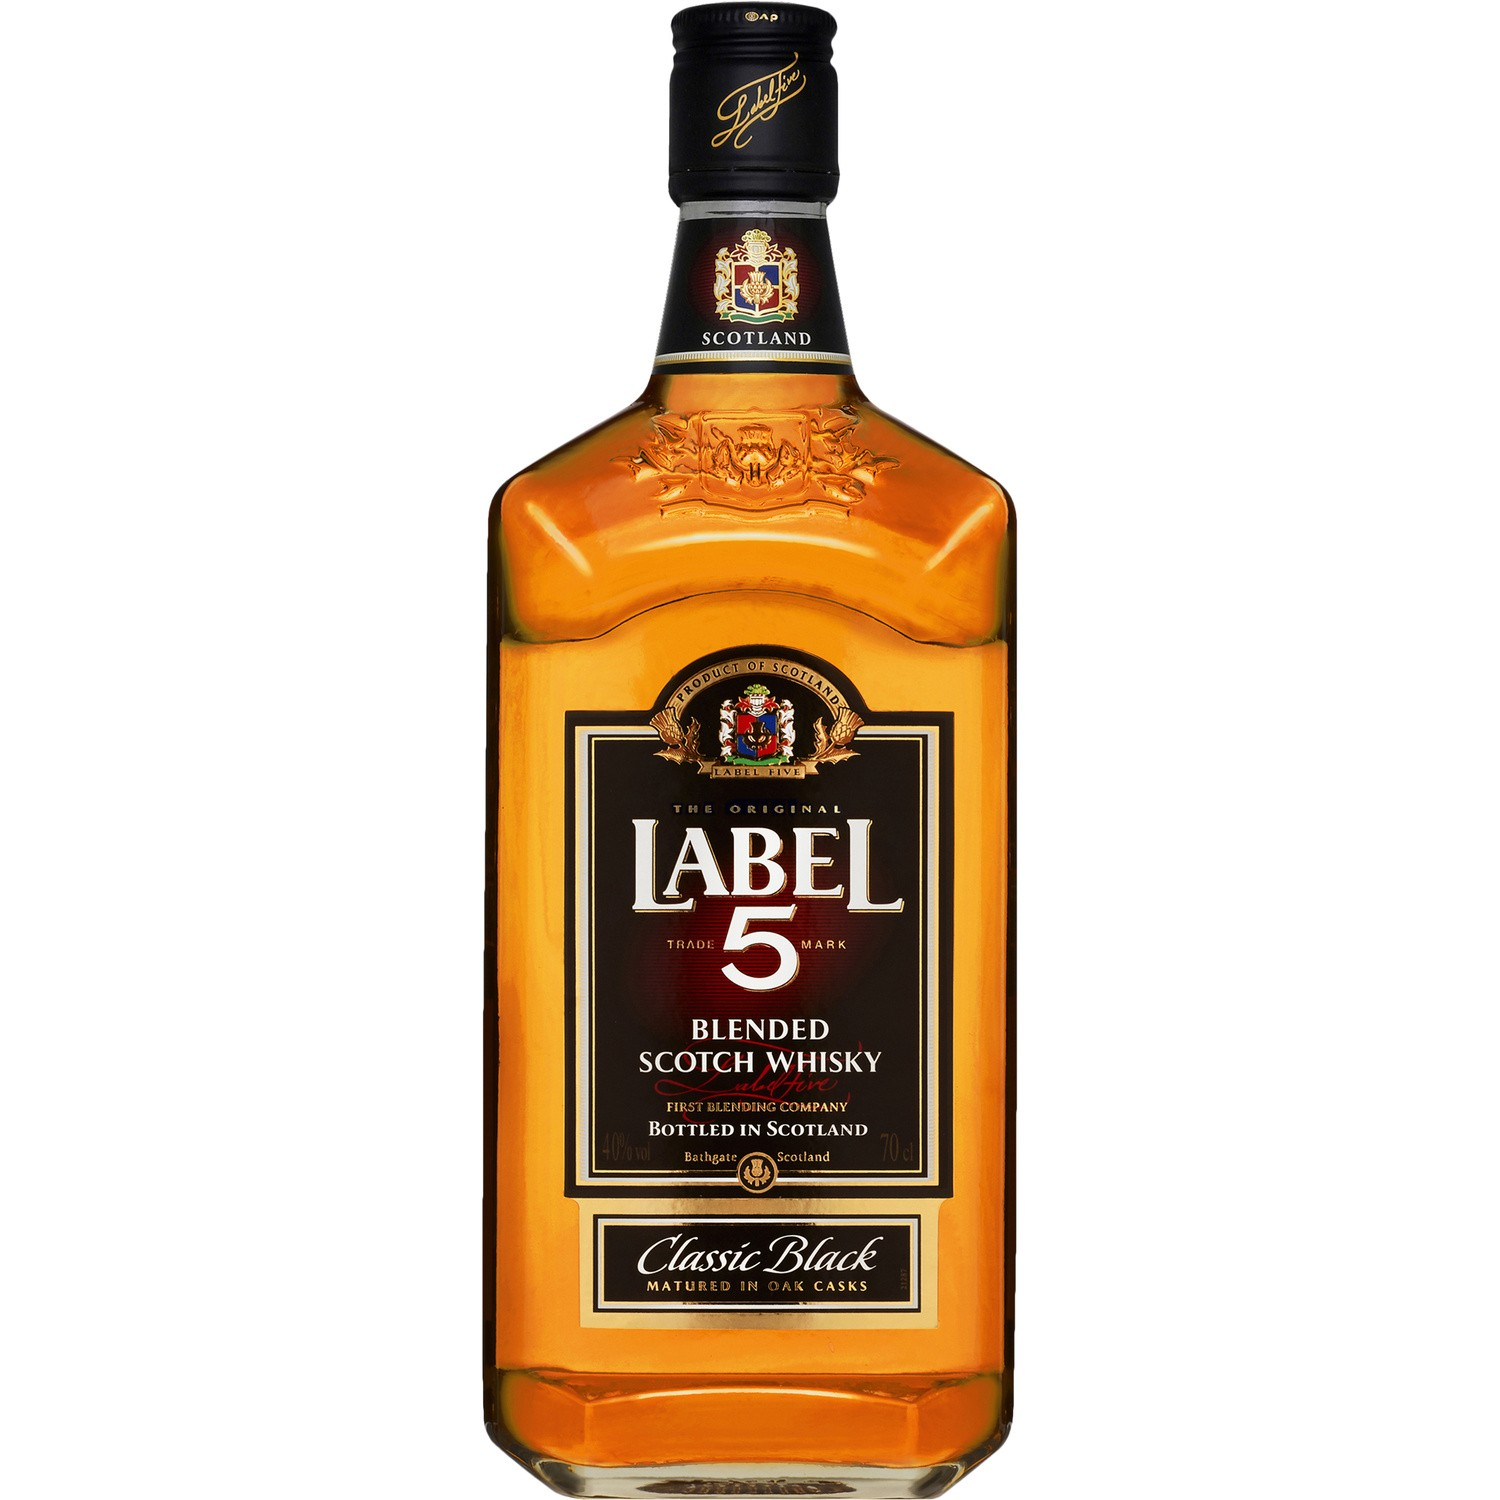 Whisky scotch classic black, Label 5 (70 cl)